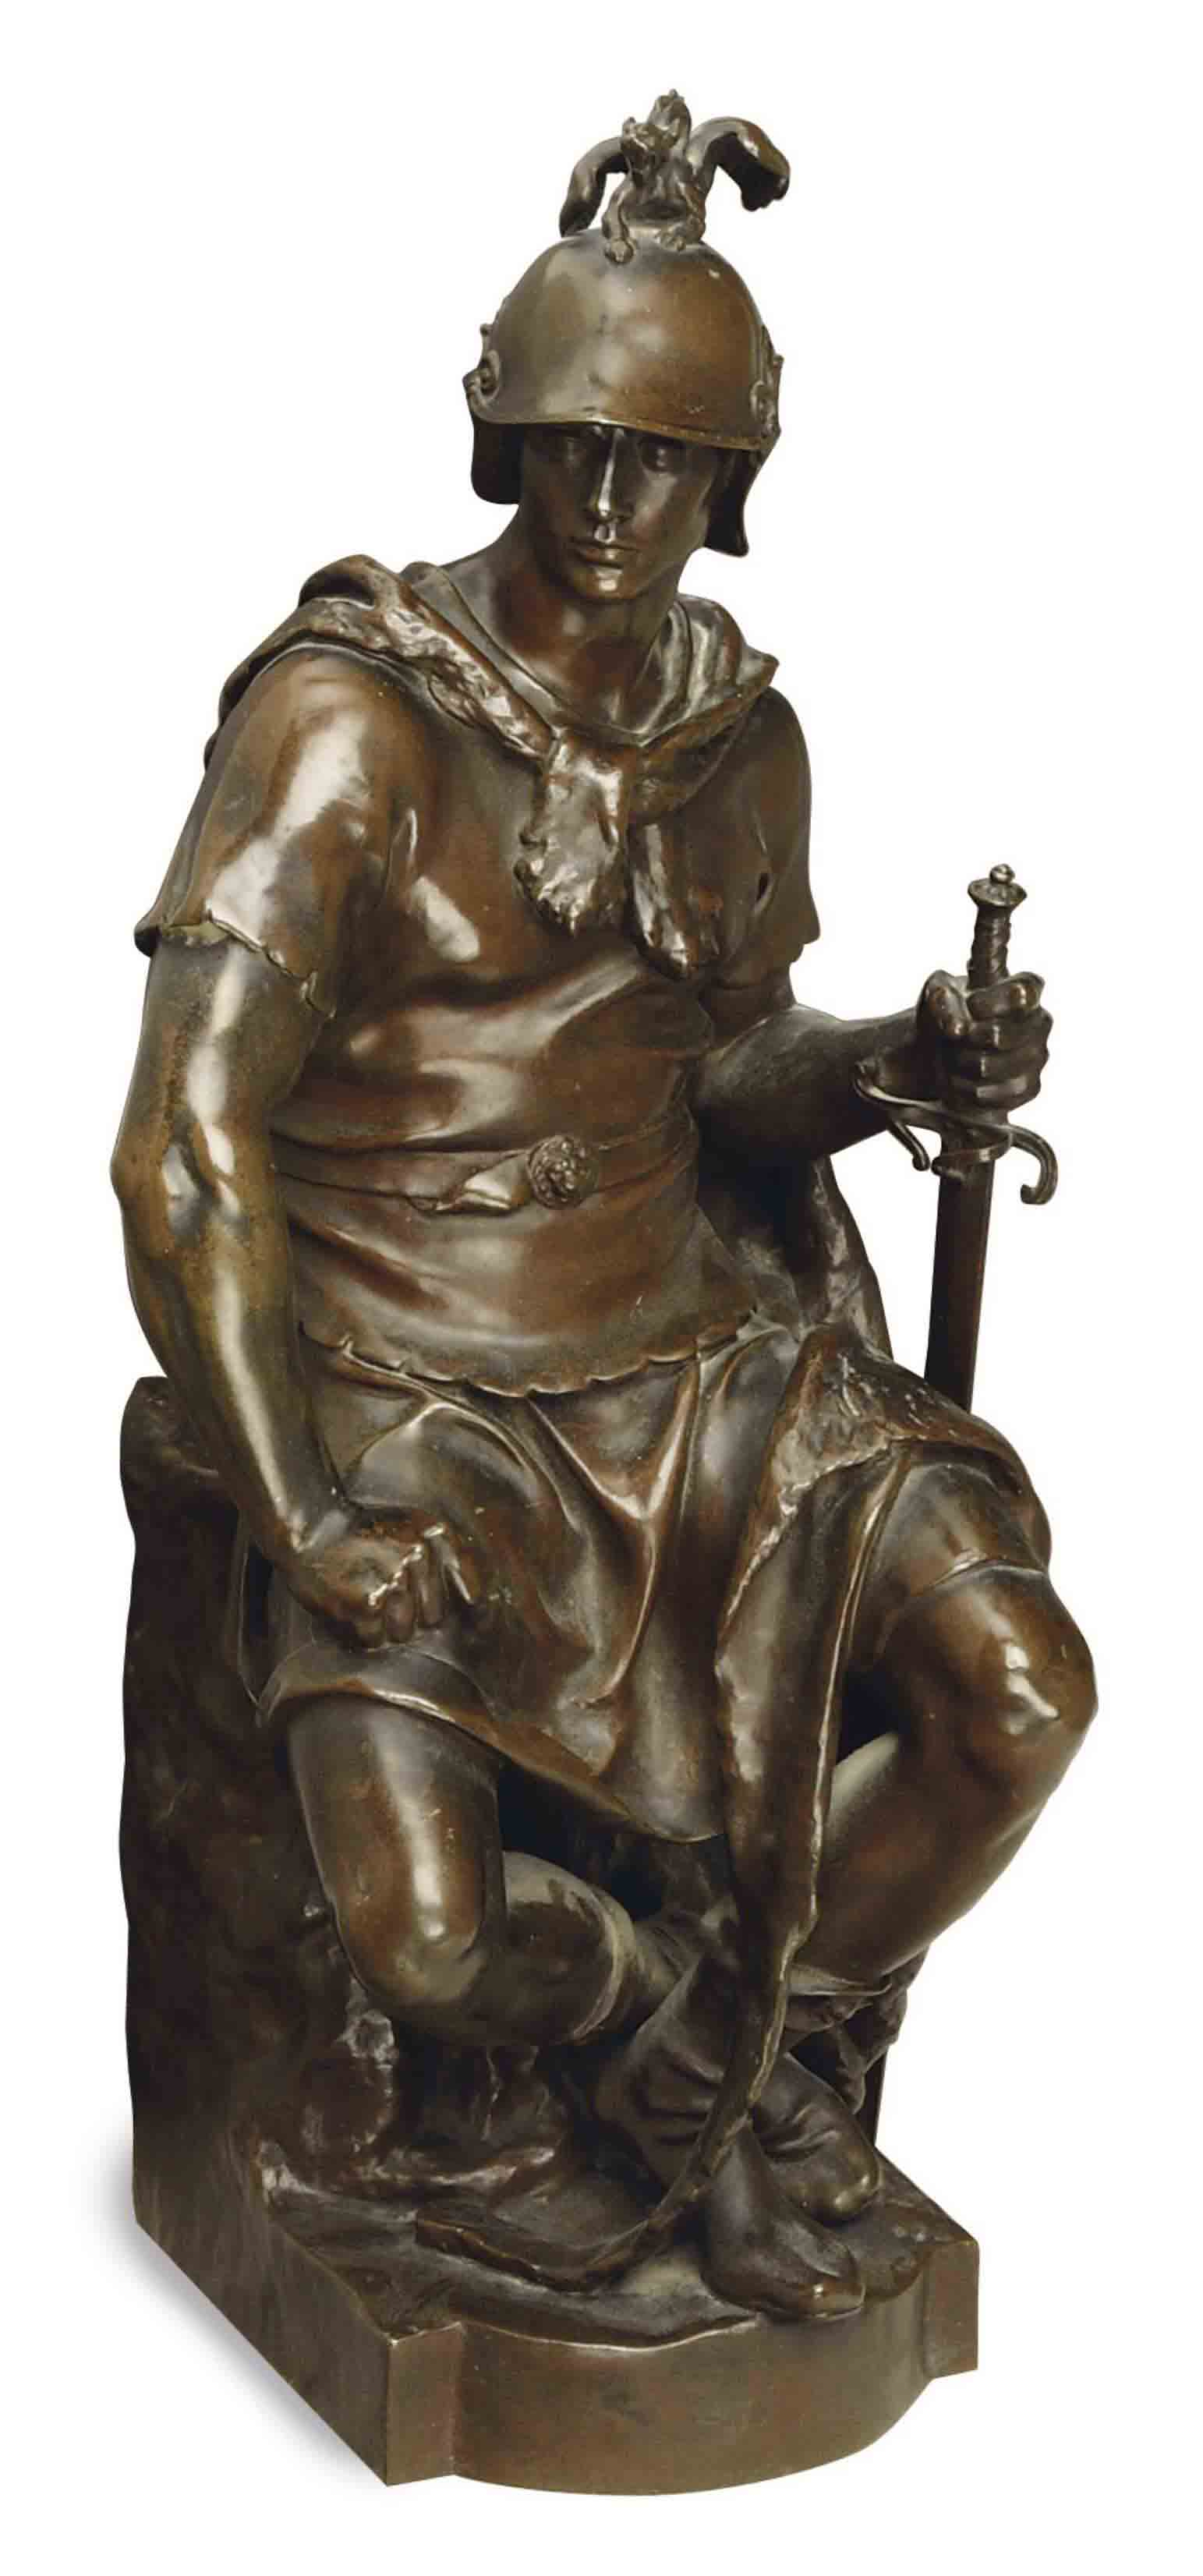 A FRENCH PATINATED-BRONZE FIGURE OF A SEATED SOLDIER,